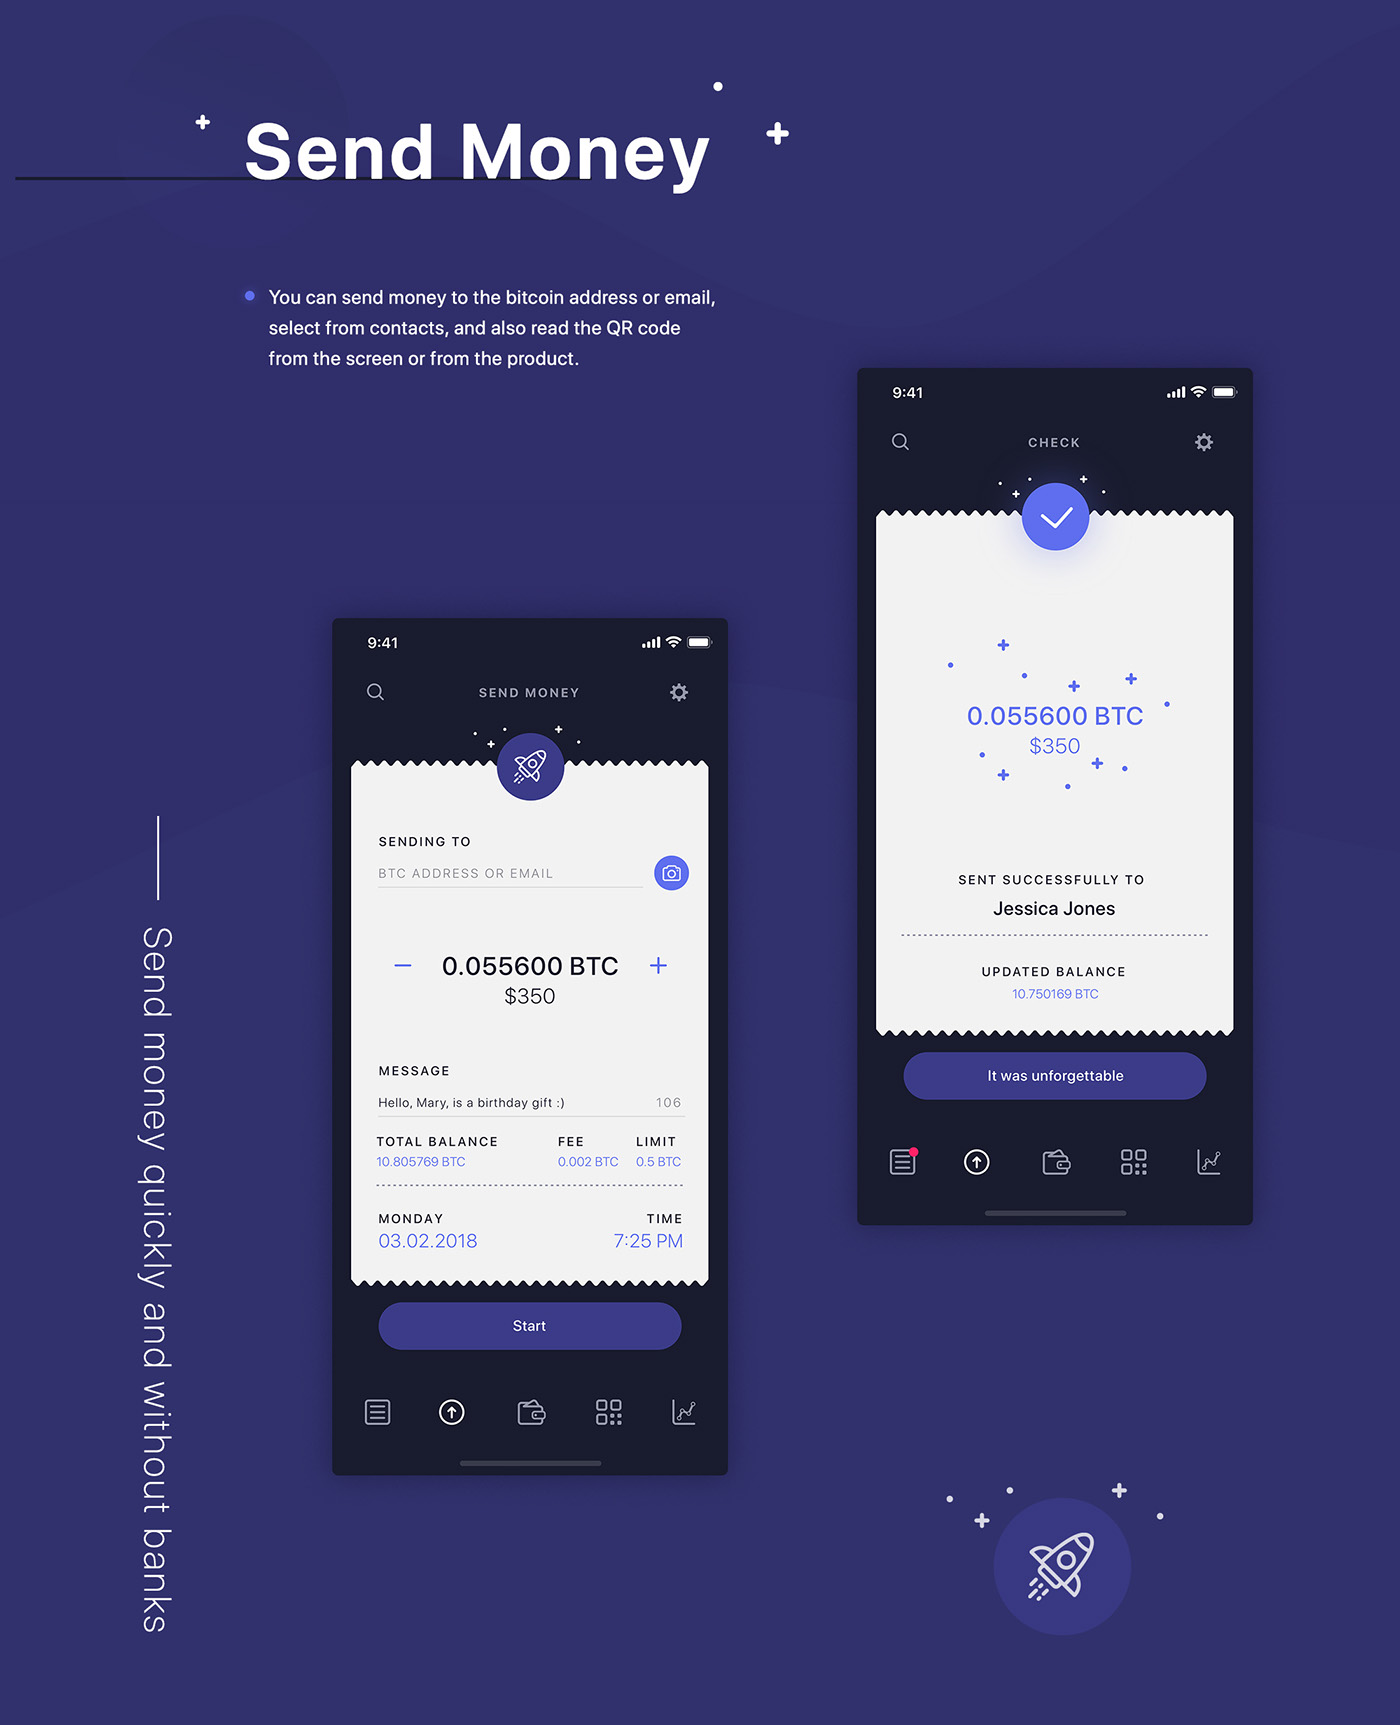 WALLET,ios,app,crypto,bitcoin,UI,ux,cryptocurrency,ethereum,ripple